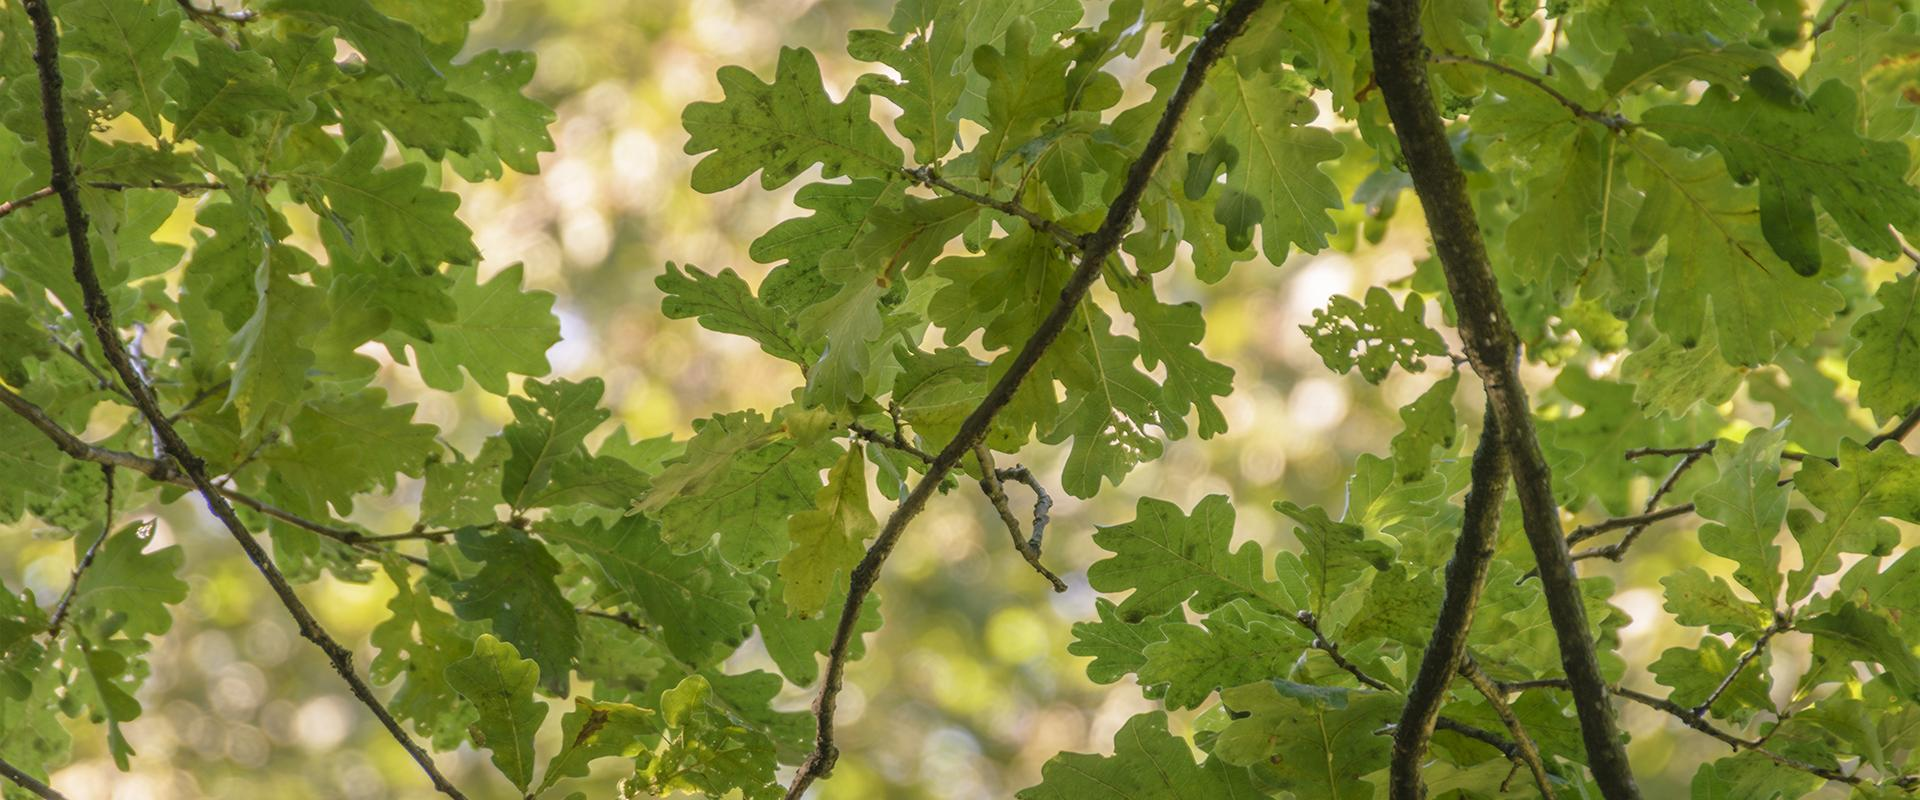 leaves on a tree in tarrant county